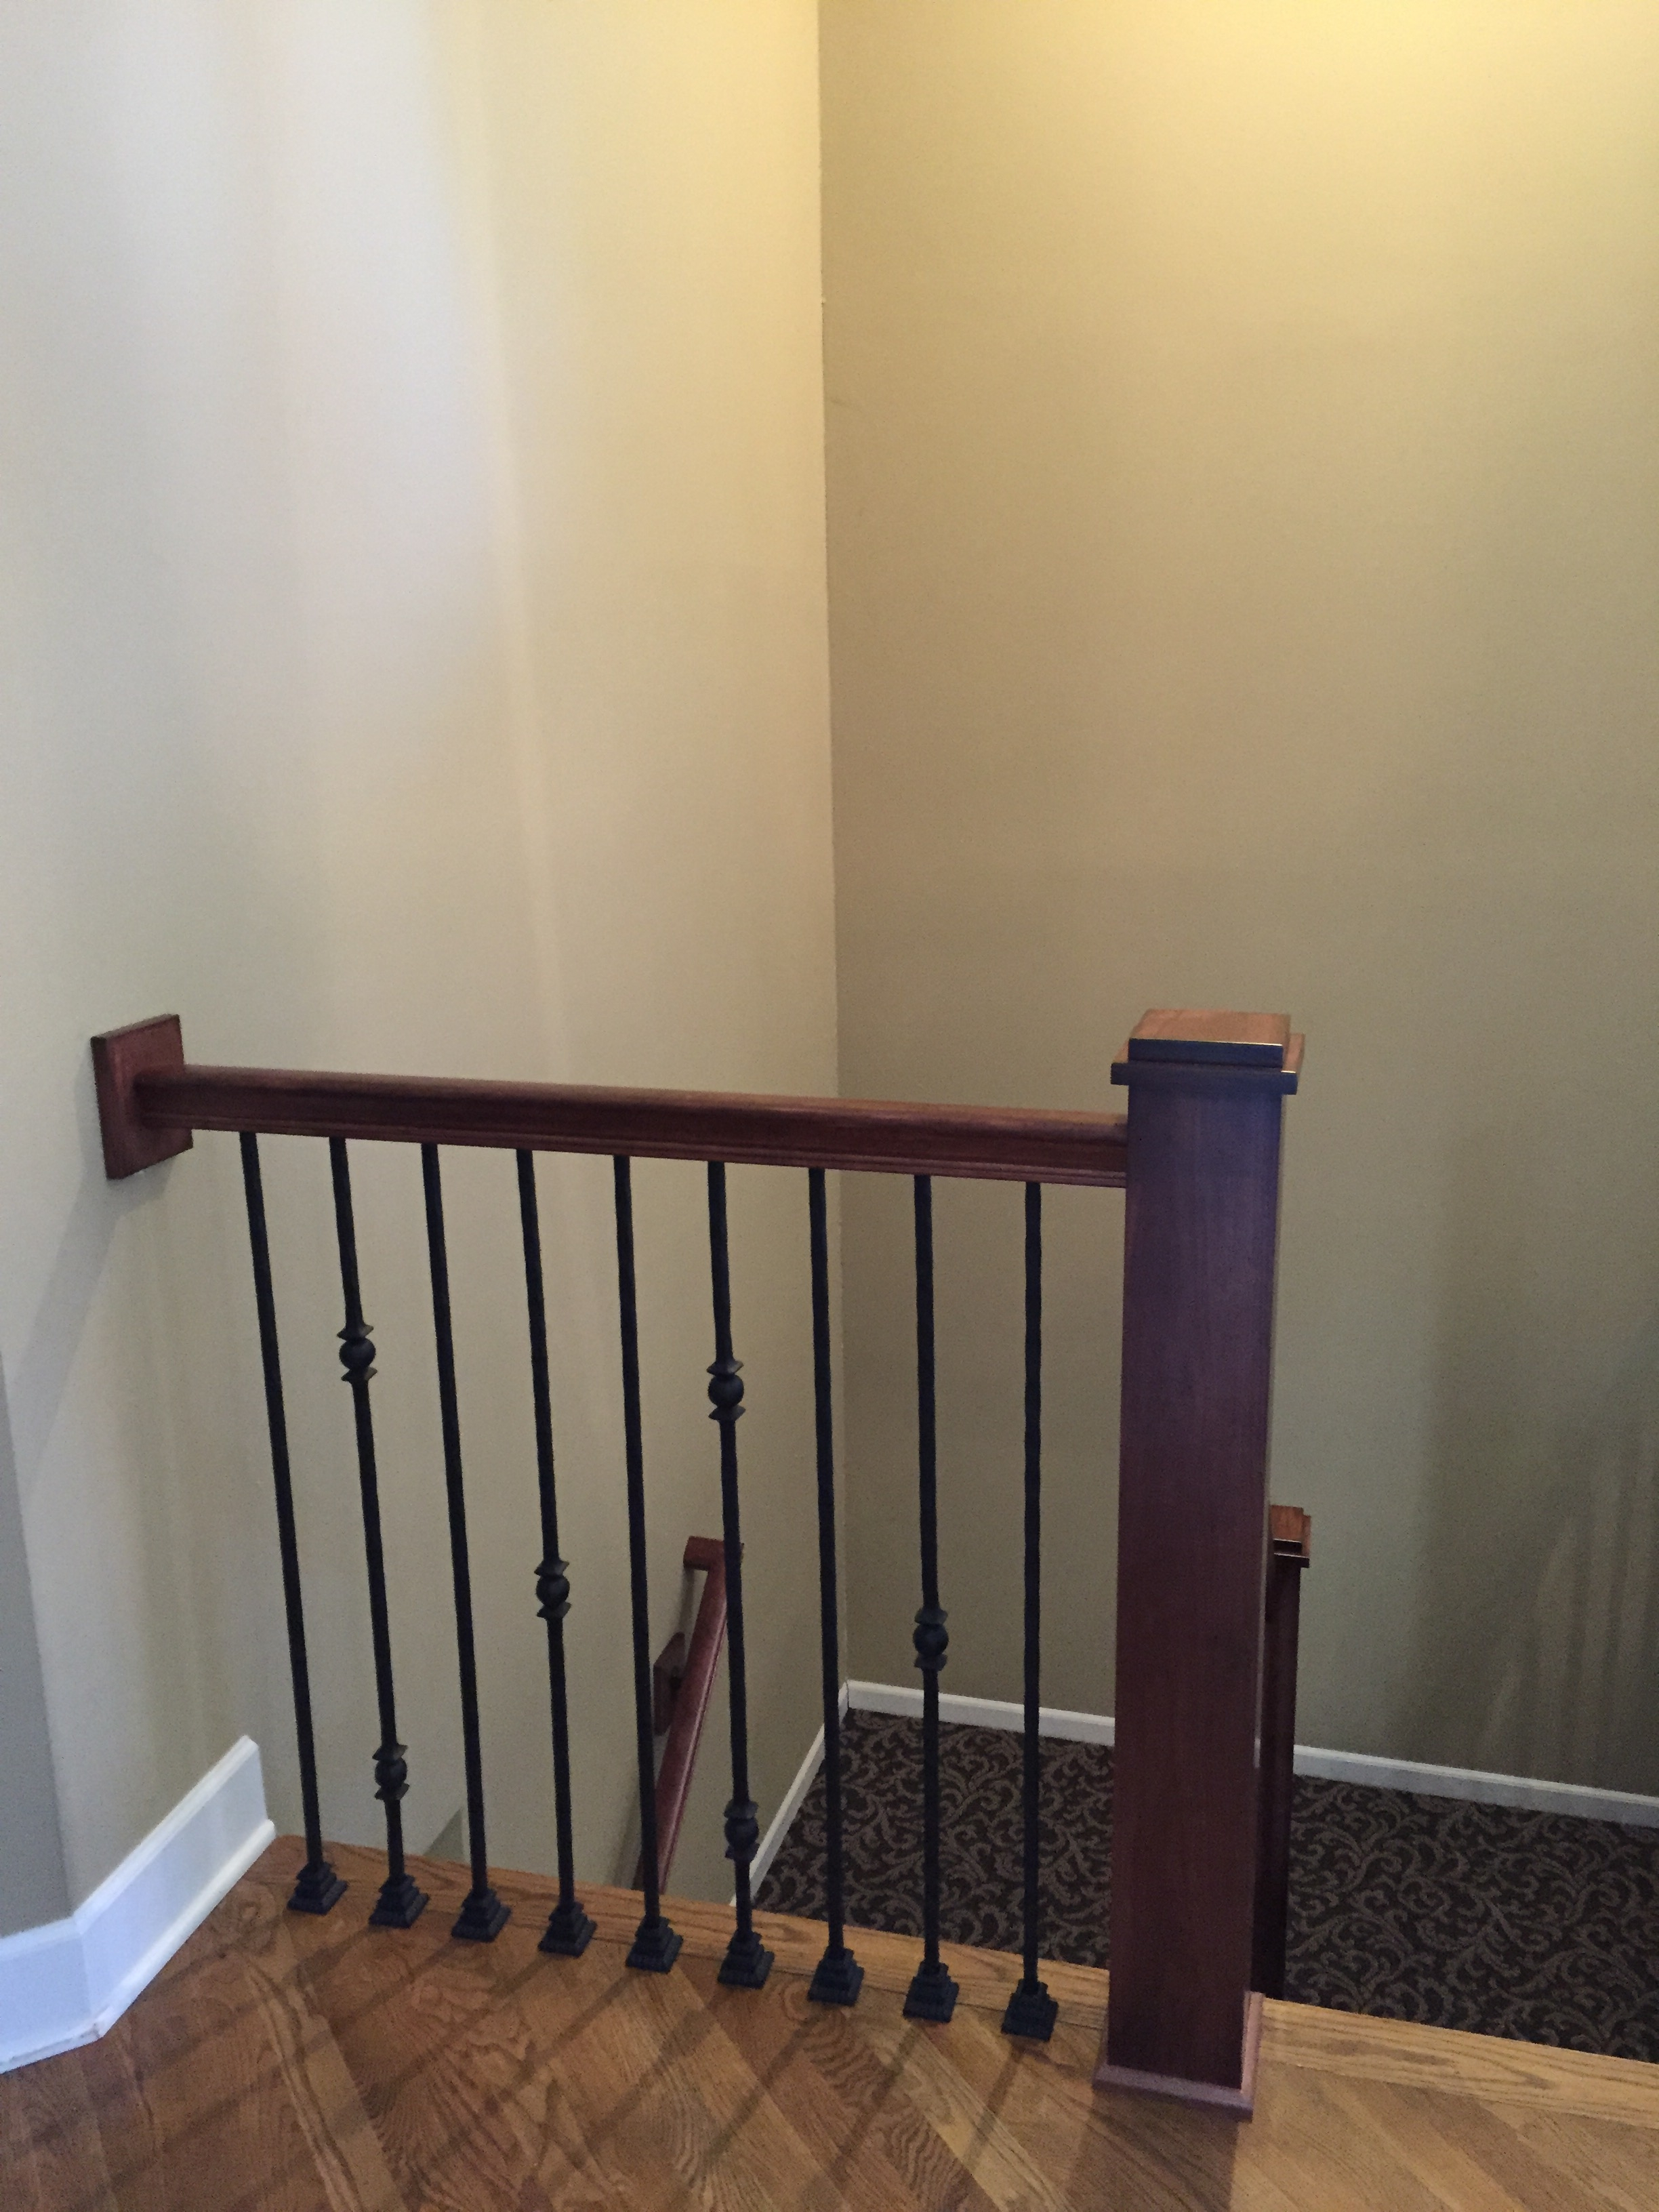 Iron Spindles Gallery Kc Wood | Iron Spindles For Sale | Contemporary | Stair | Balcony | Iron Rod | Wrought Iron